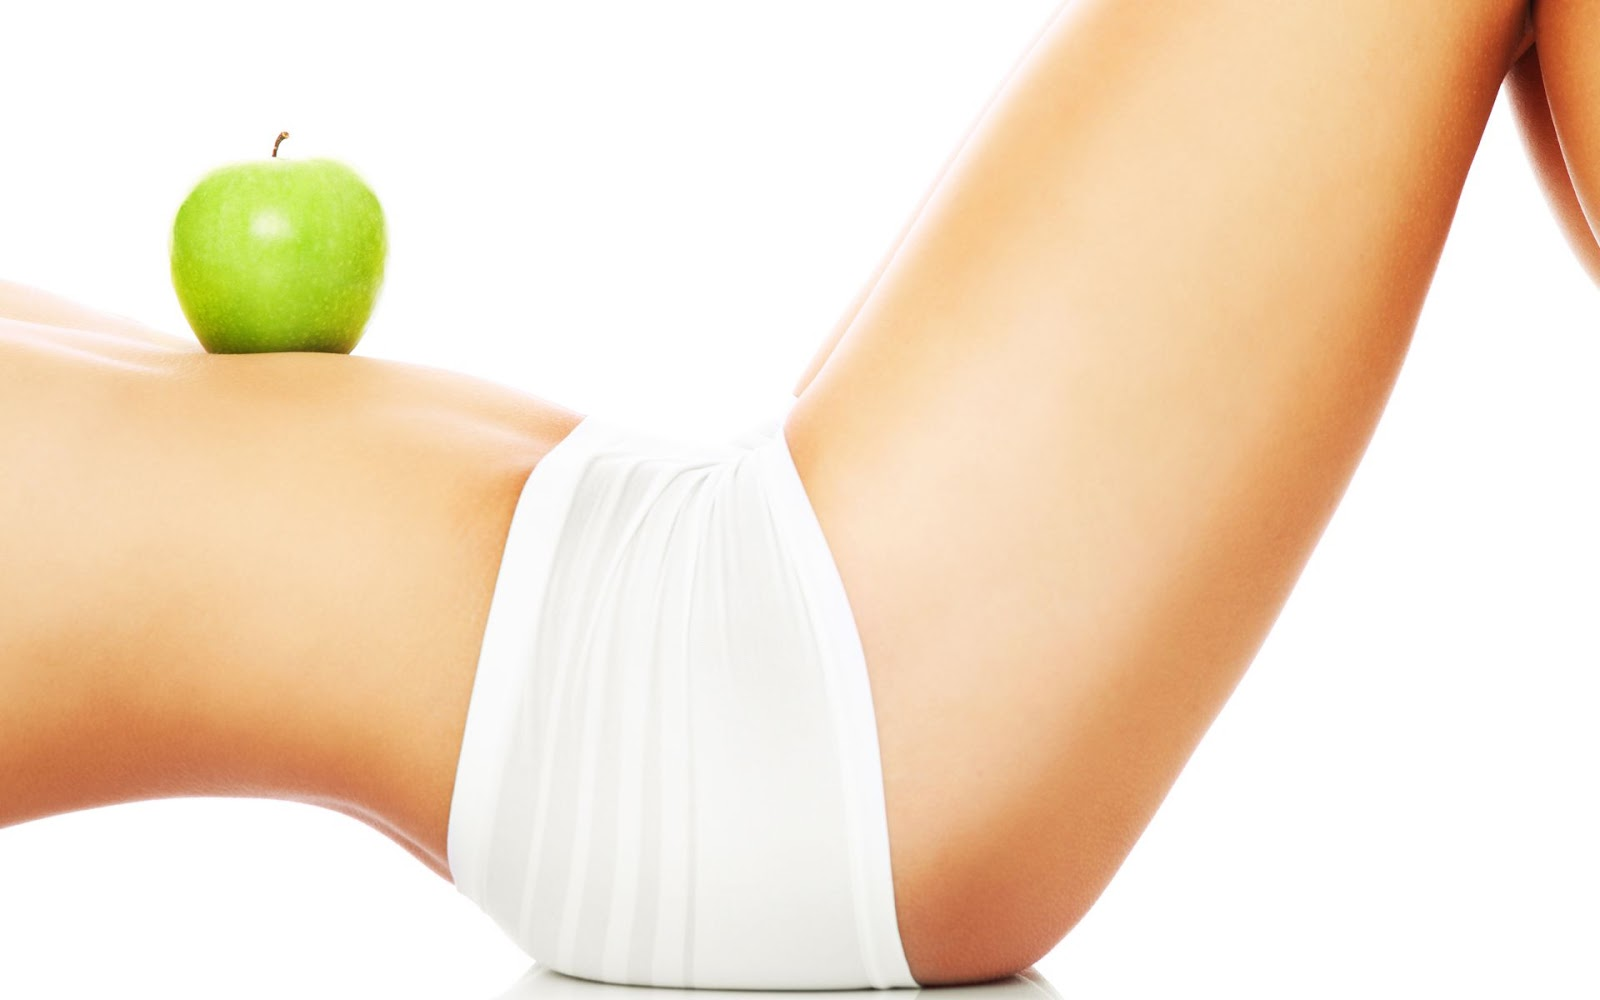 Mesotherapy VS Liposuction - Which One Is The Better Solution to Get Rid of Cellulite?